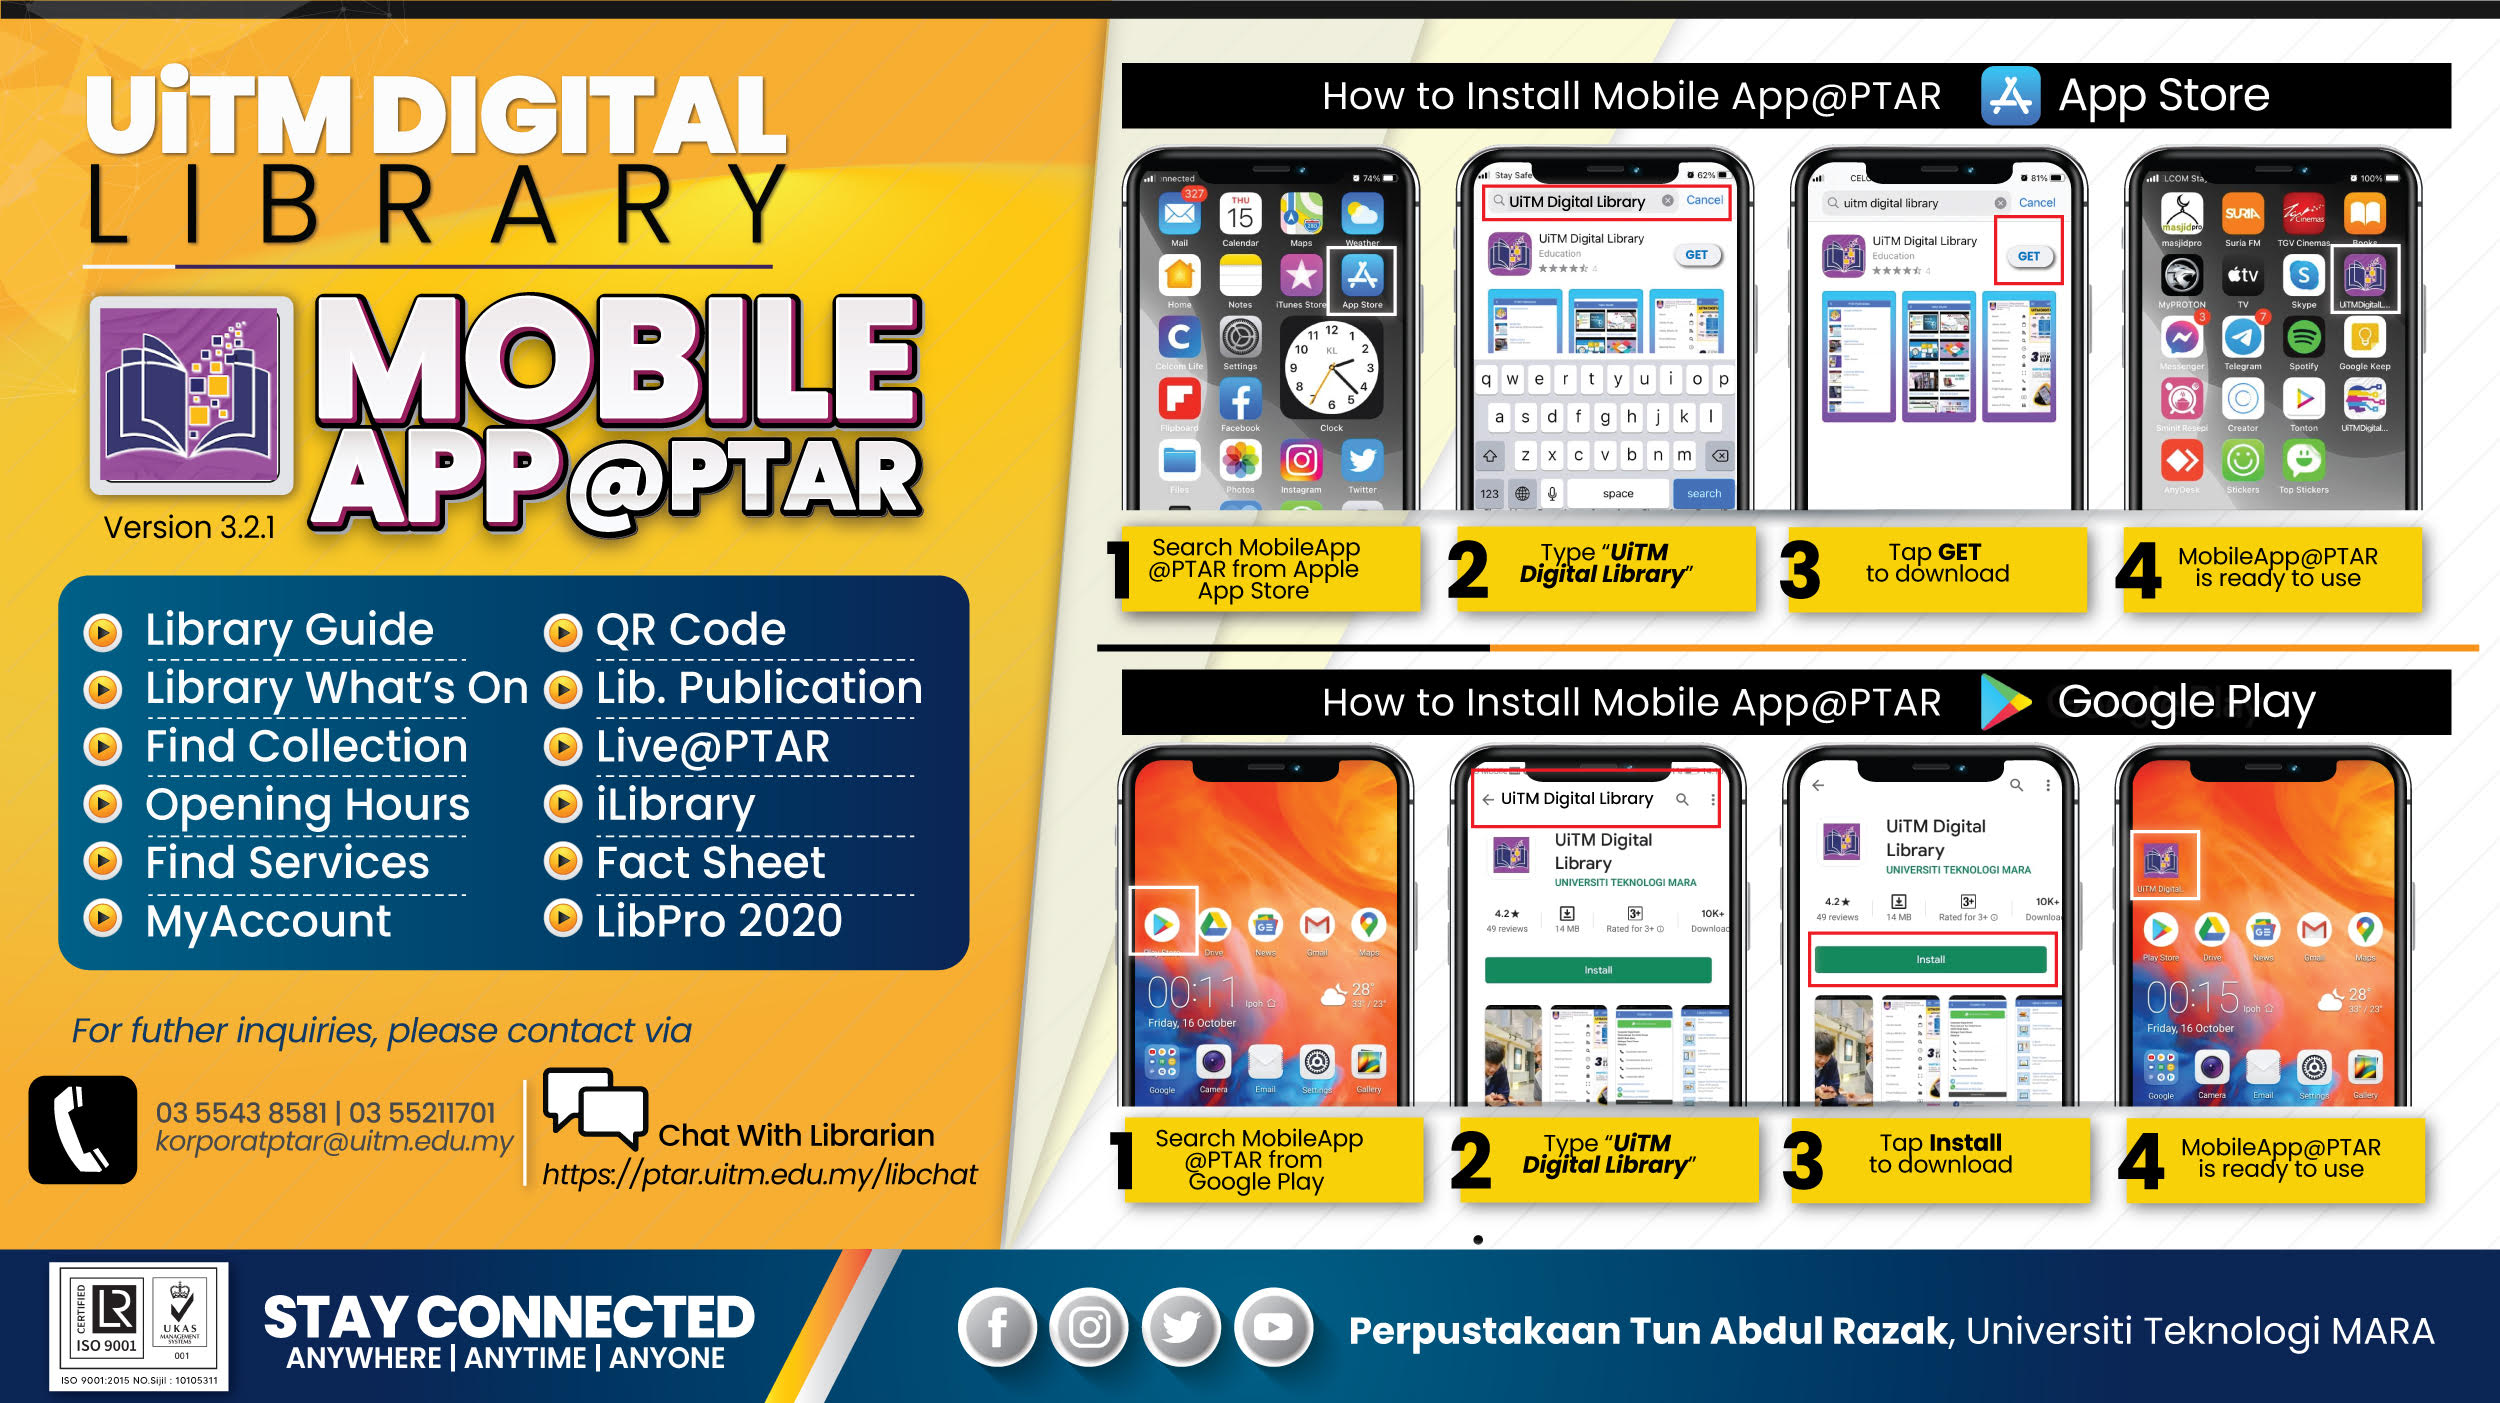 STAY CONNECTED: UiTM Digital Library - Mobile App@PTAR